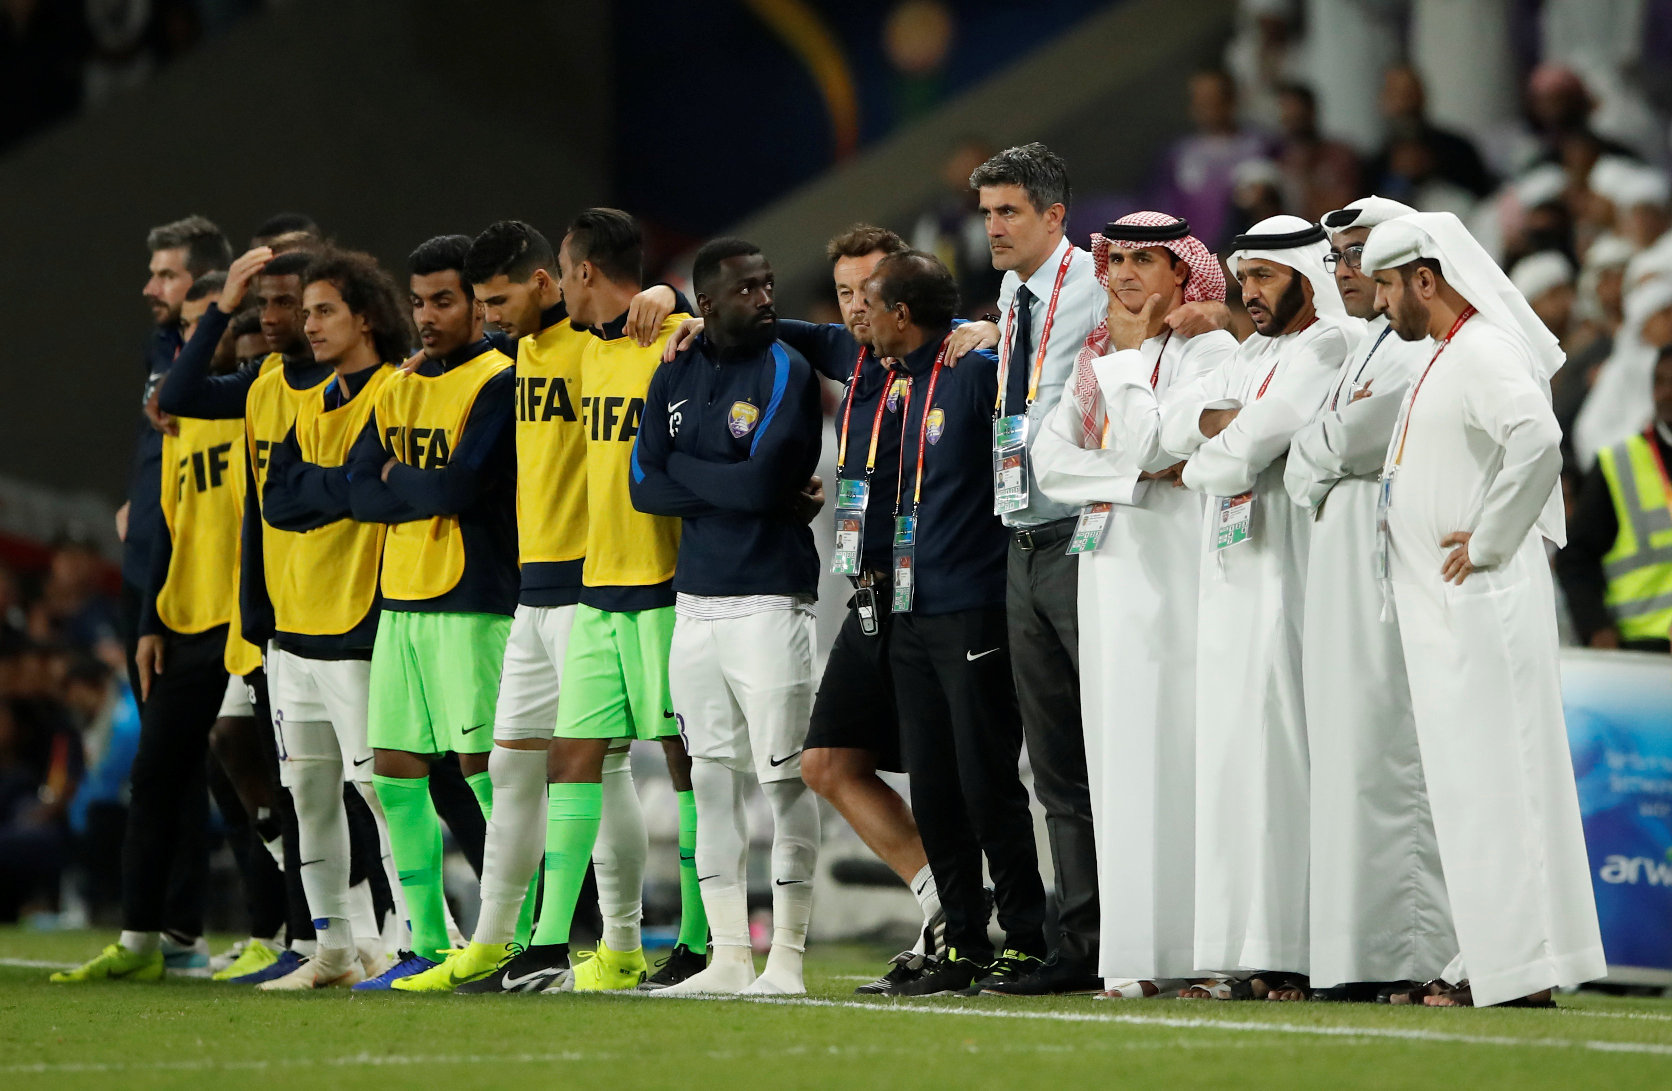 Soccer Football - Club World Cup - Semi-Final - River Plate v Al Ain FC - Hazza Bin Zayed Stadium, Al Ain City, United Arab Emirates - December 18, 2018  Al-Ain coach Zoran Mamic with players and backroom staff during the penalty shootout                  REUTERS/Andrew Boyers